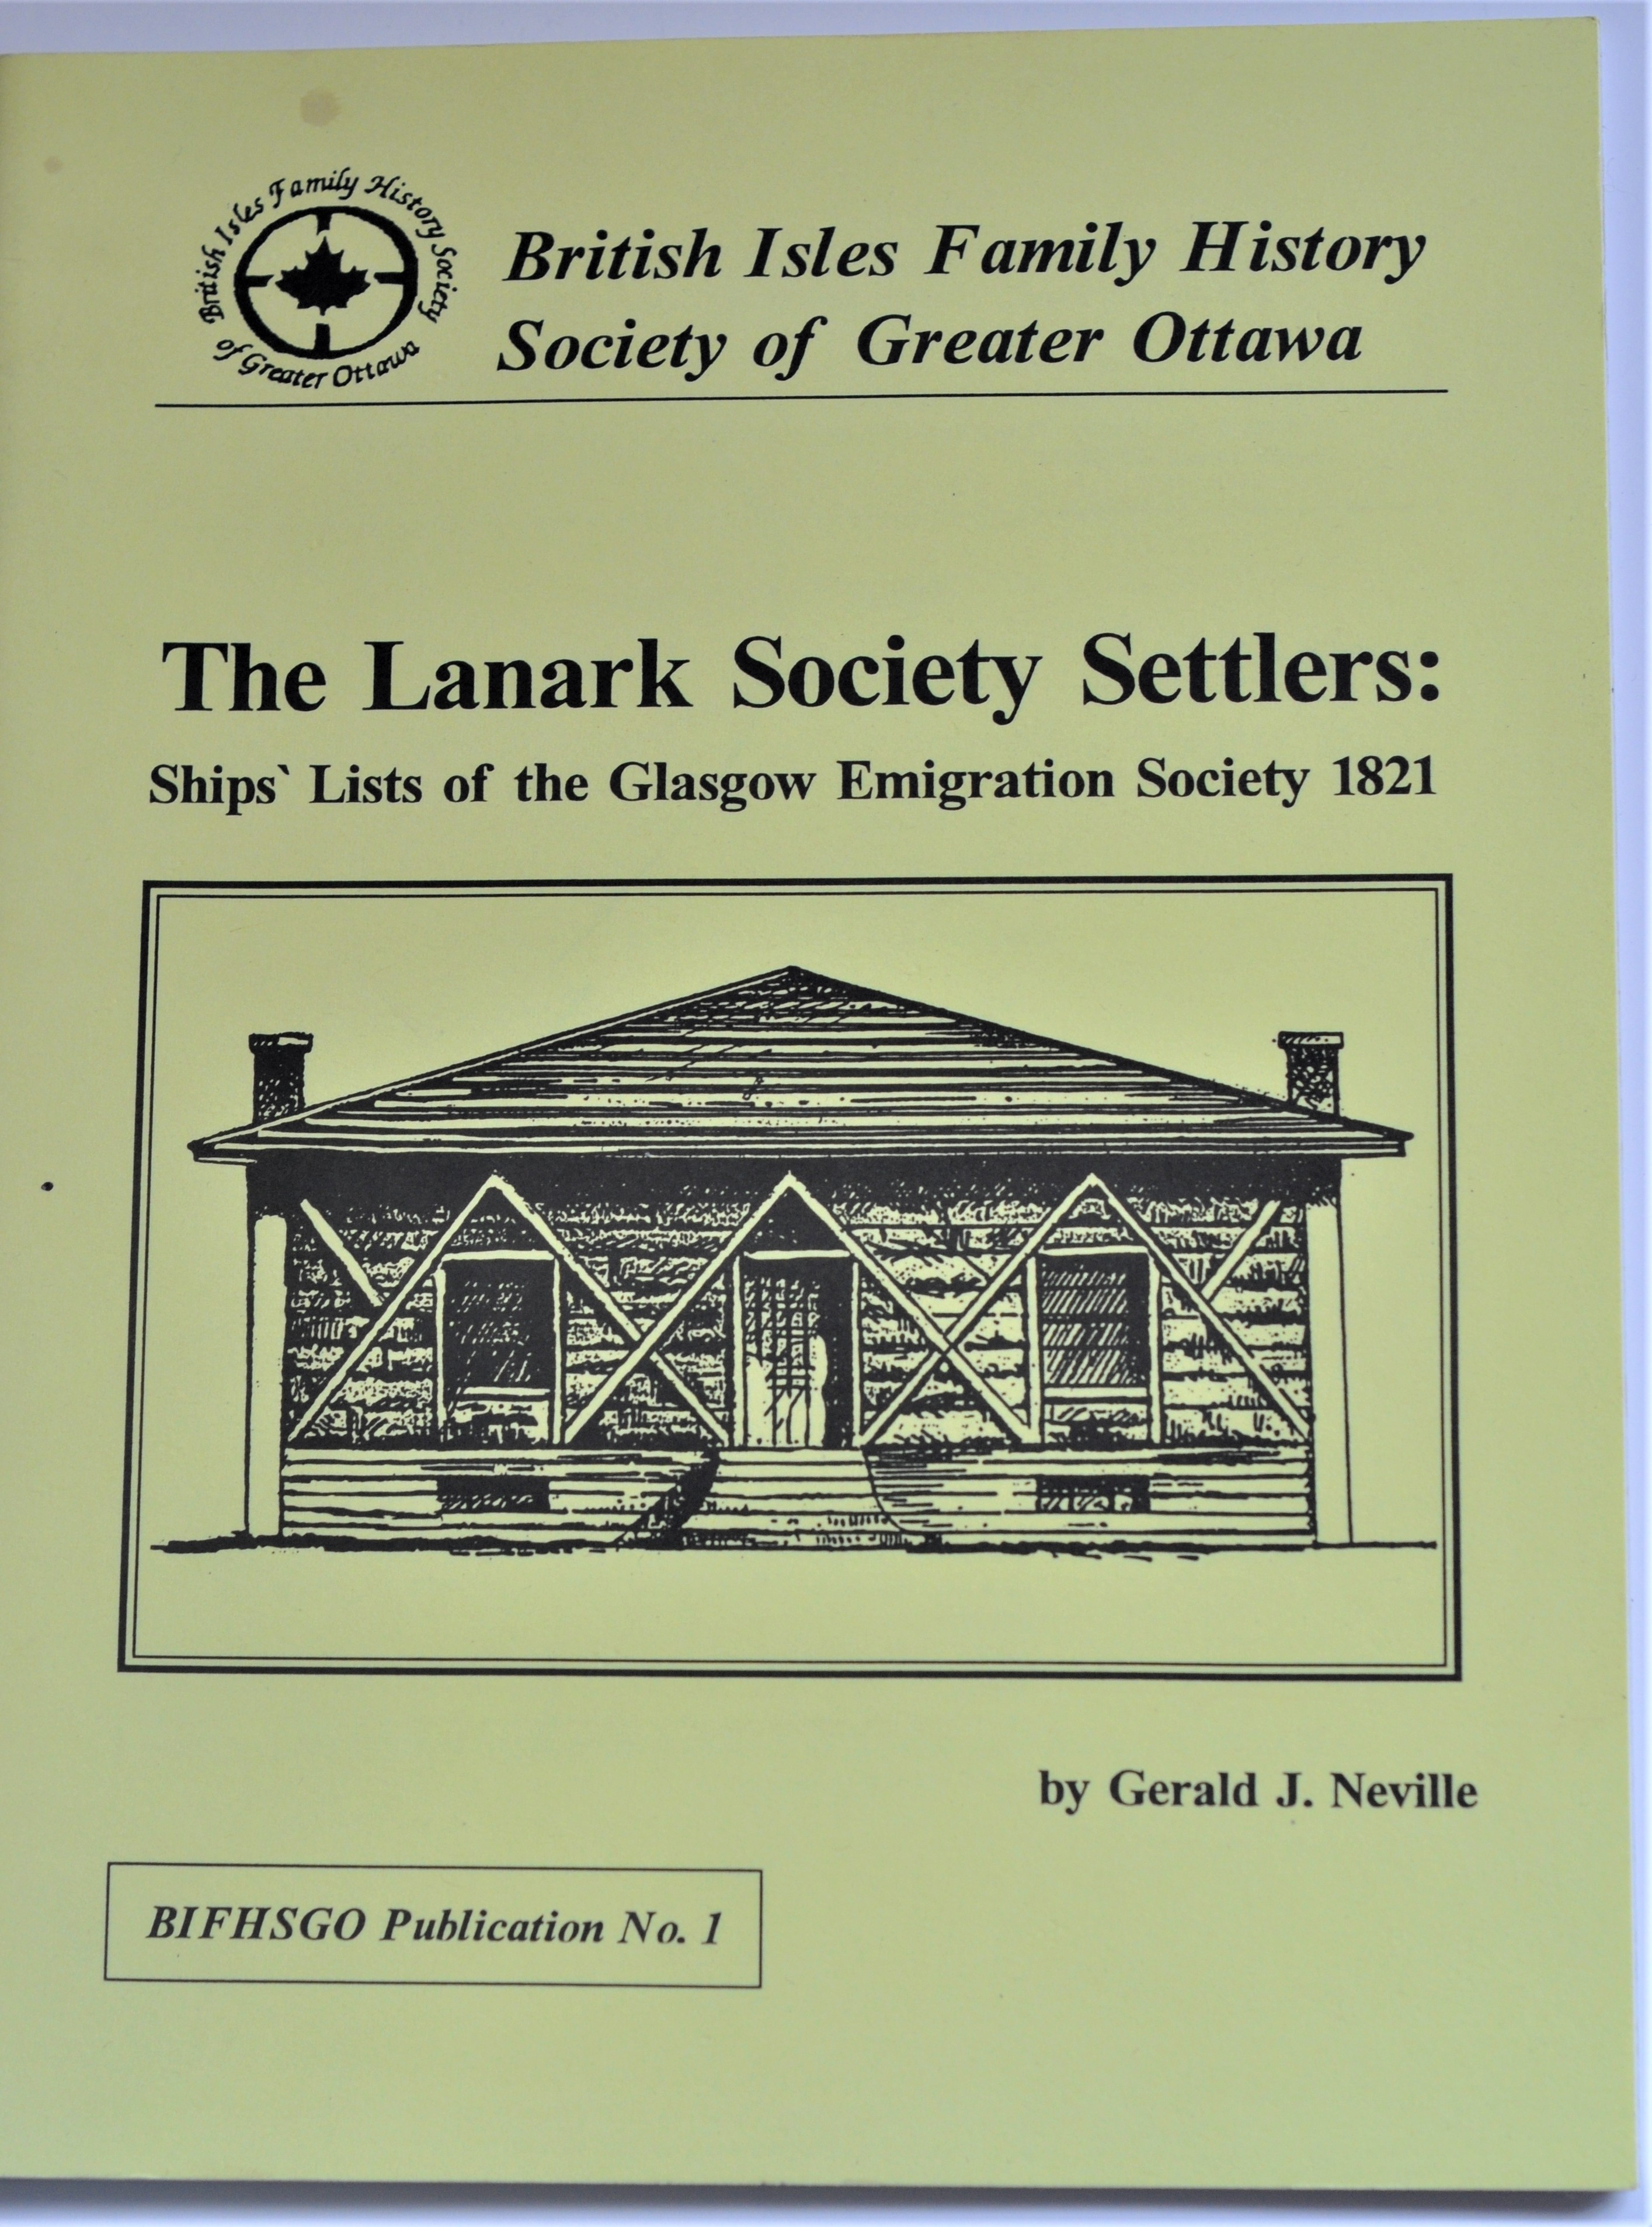 The Lanark Society Settlers, Ship's Lists of the Glasgow Emigration Society 1821